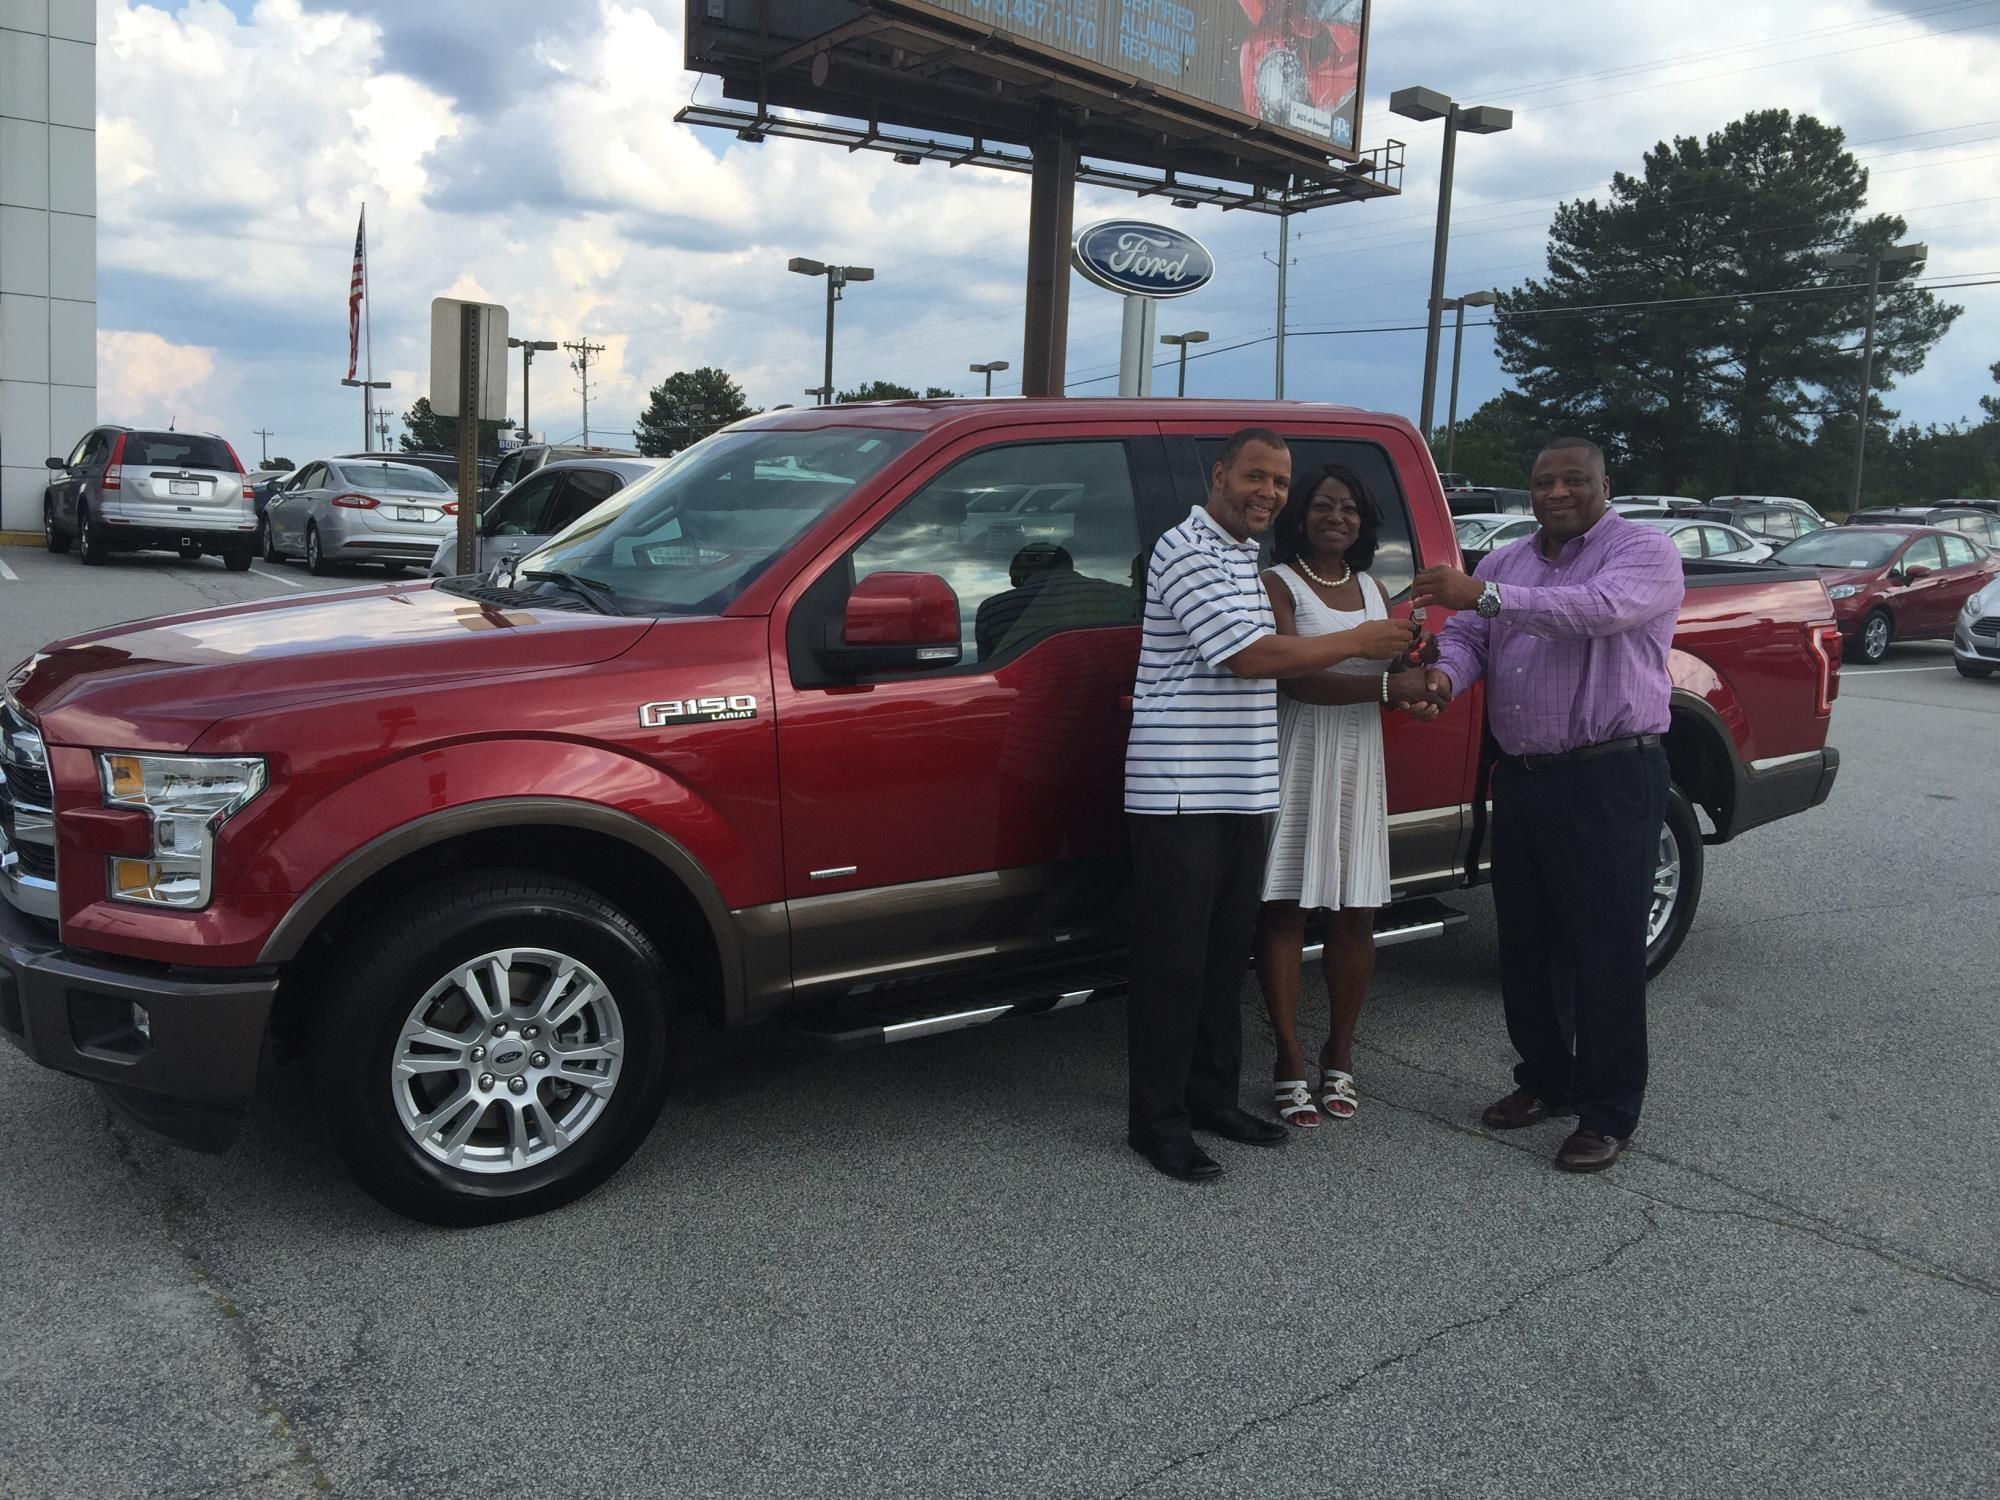 Jerome Henderson Reviews The 2015 Ford F 150 He Purchased From Courtesy Ford In Conyers Ga Ford F150 Ford Car Ford